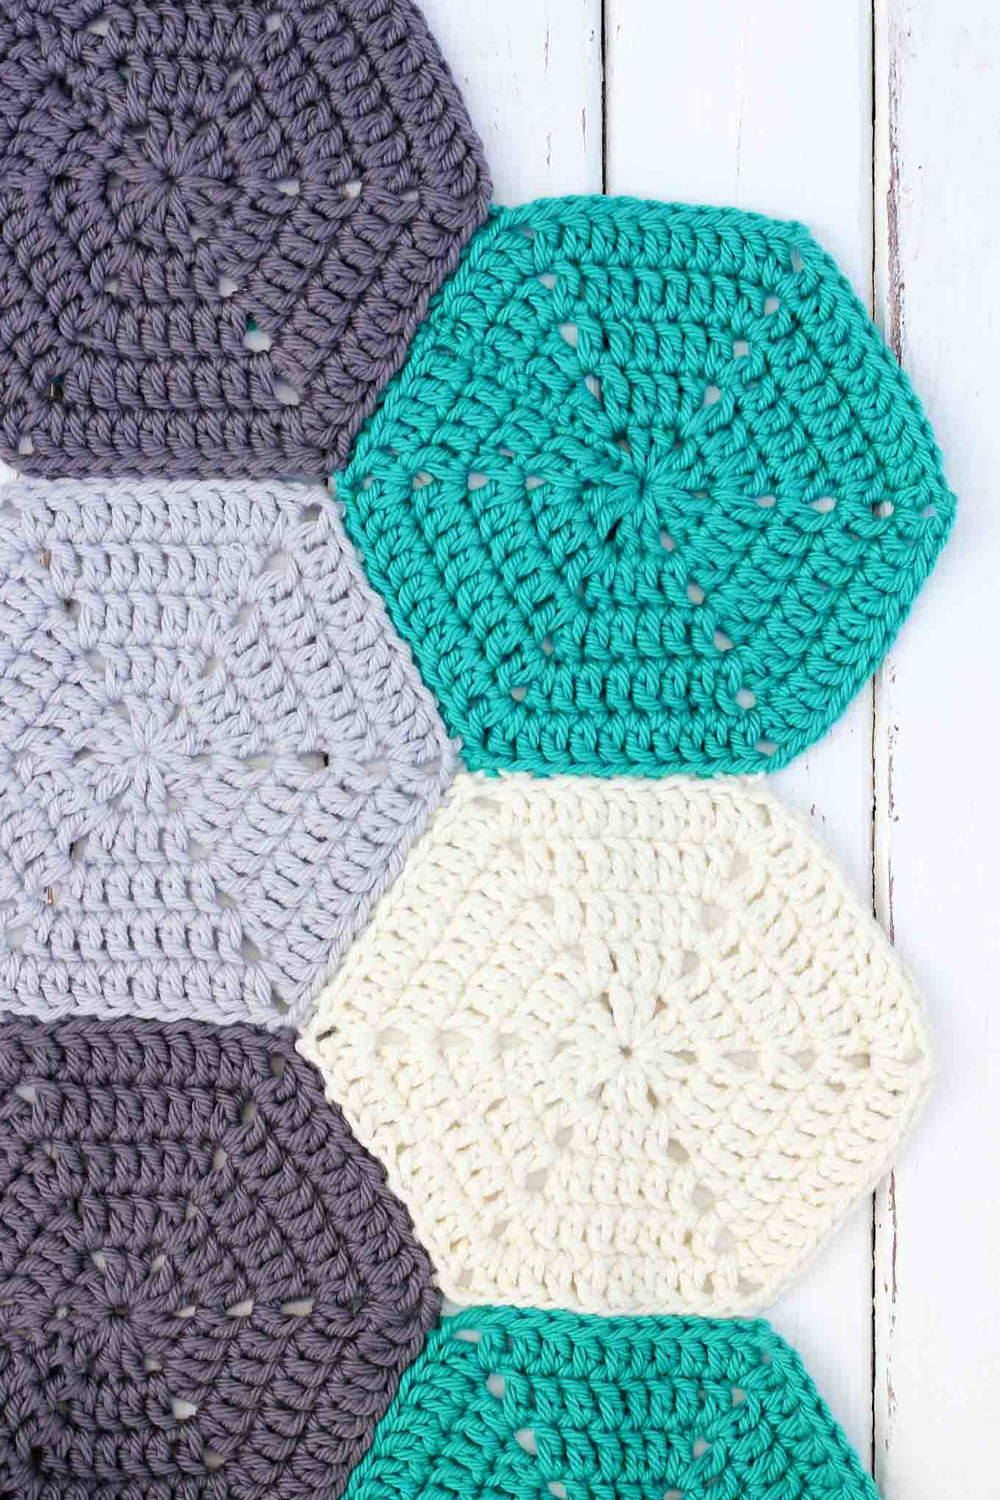 Browse Thousands of Free Knit Patterns and Free Crochet Patterns